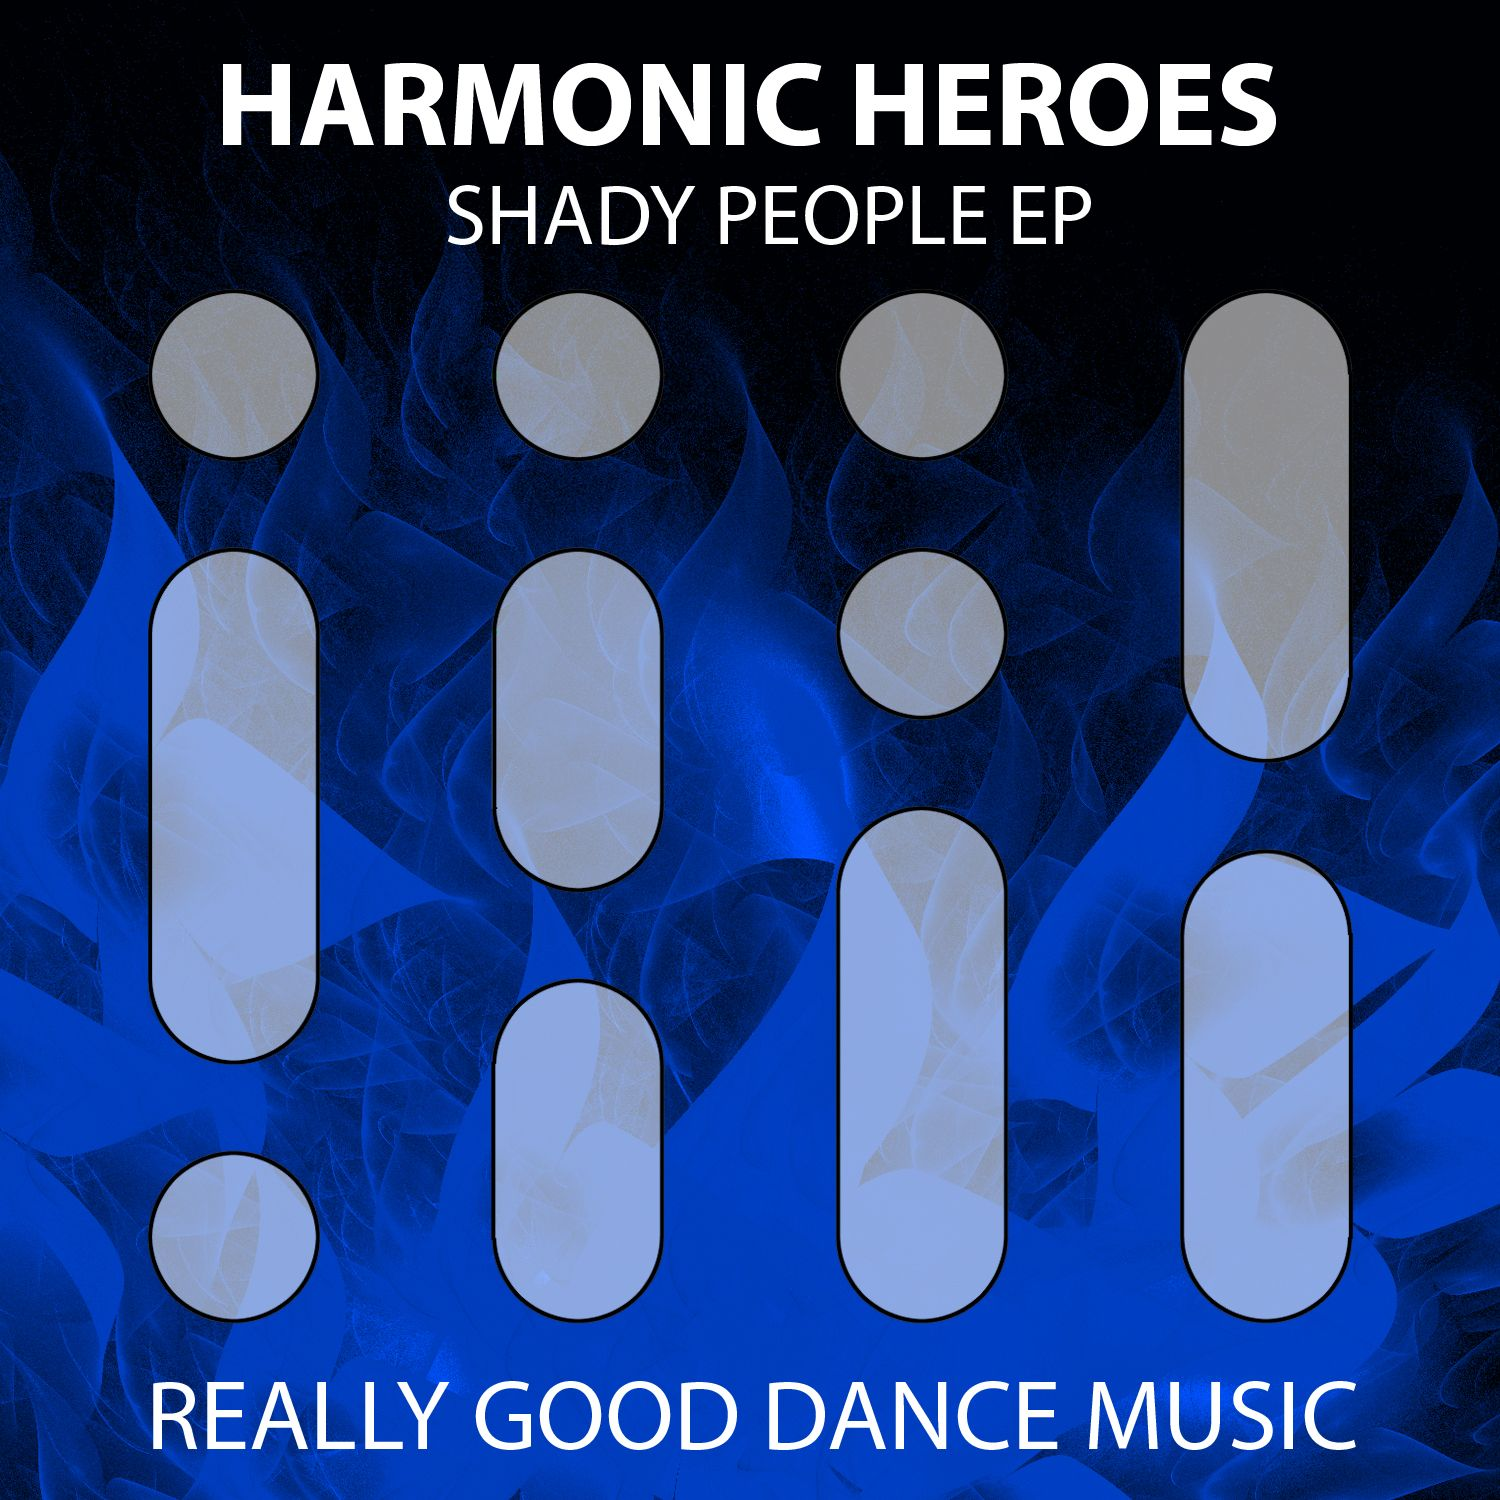 harmonicheroes-shadypeopleep.jpg